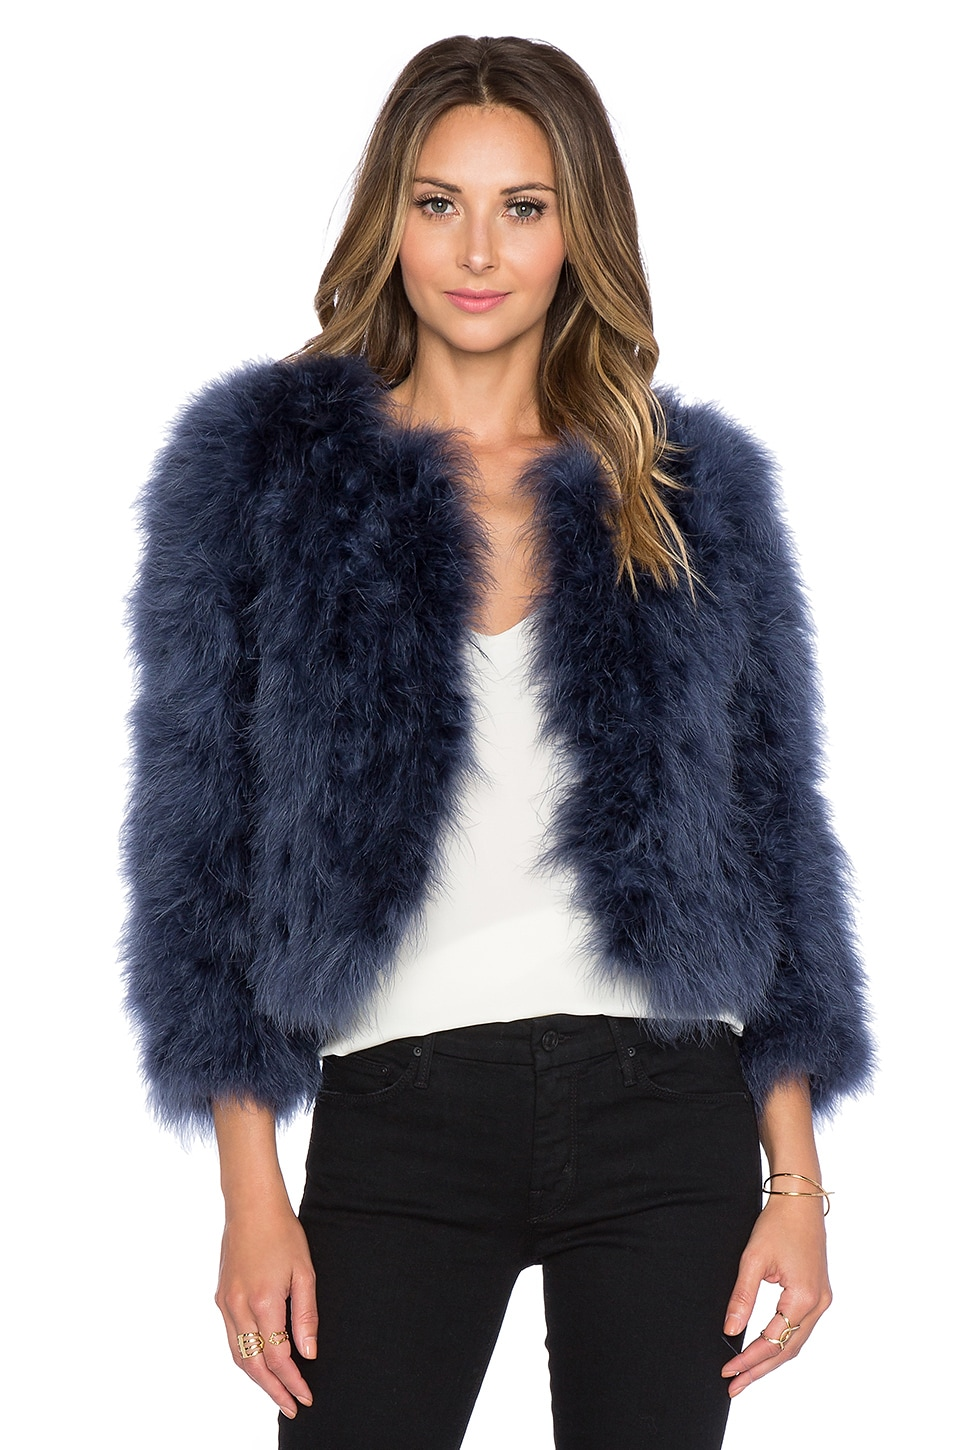 Yumi Kim Away We Go Faux Fur Feather Jacket in Navy